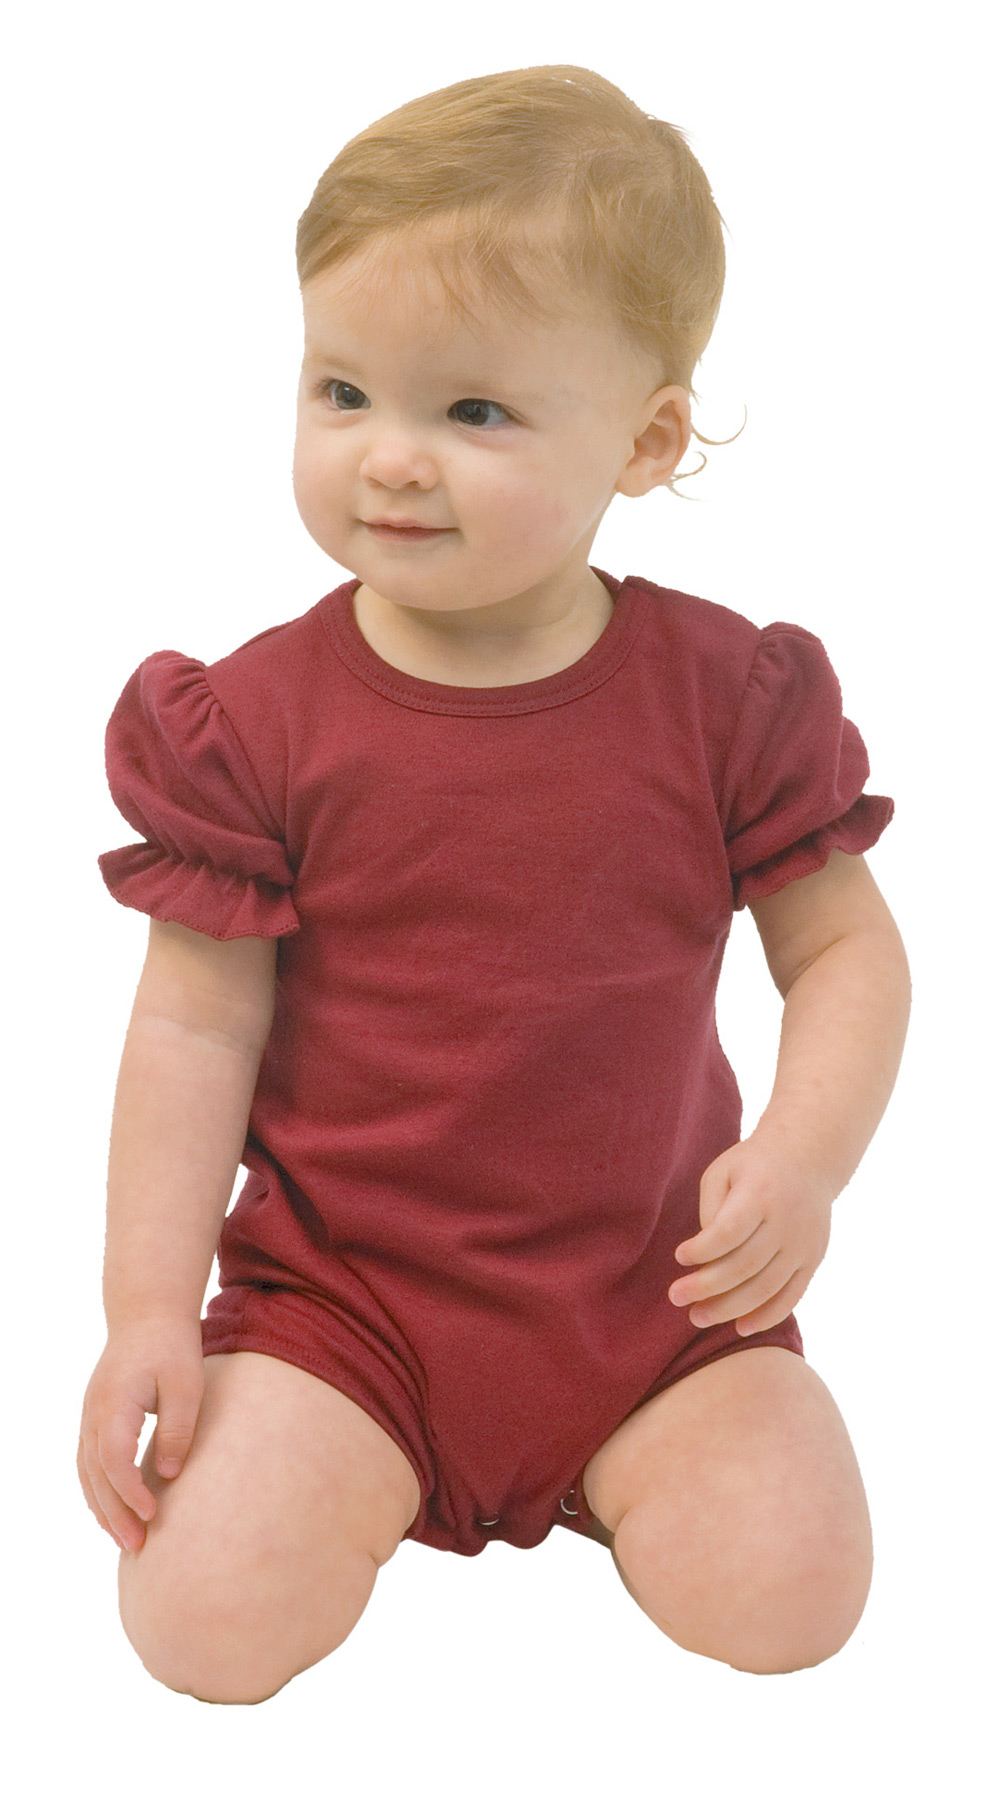 Monag 100011 - Interlock Short Sleeve Girls Romper